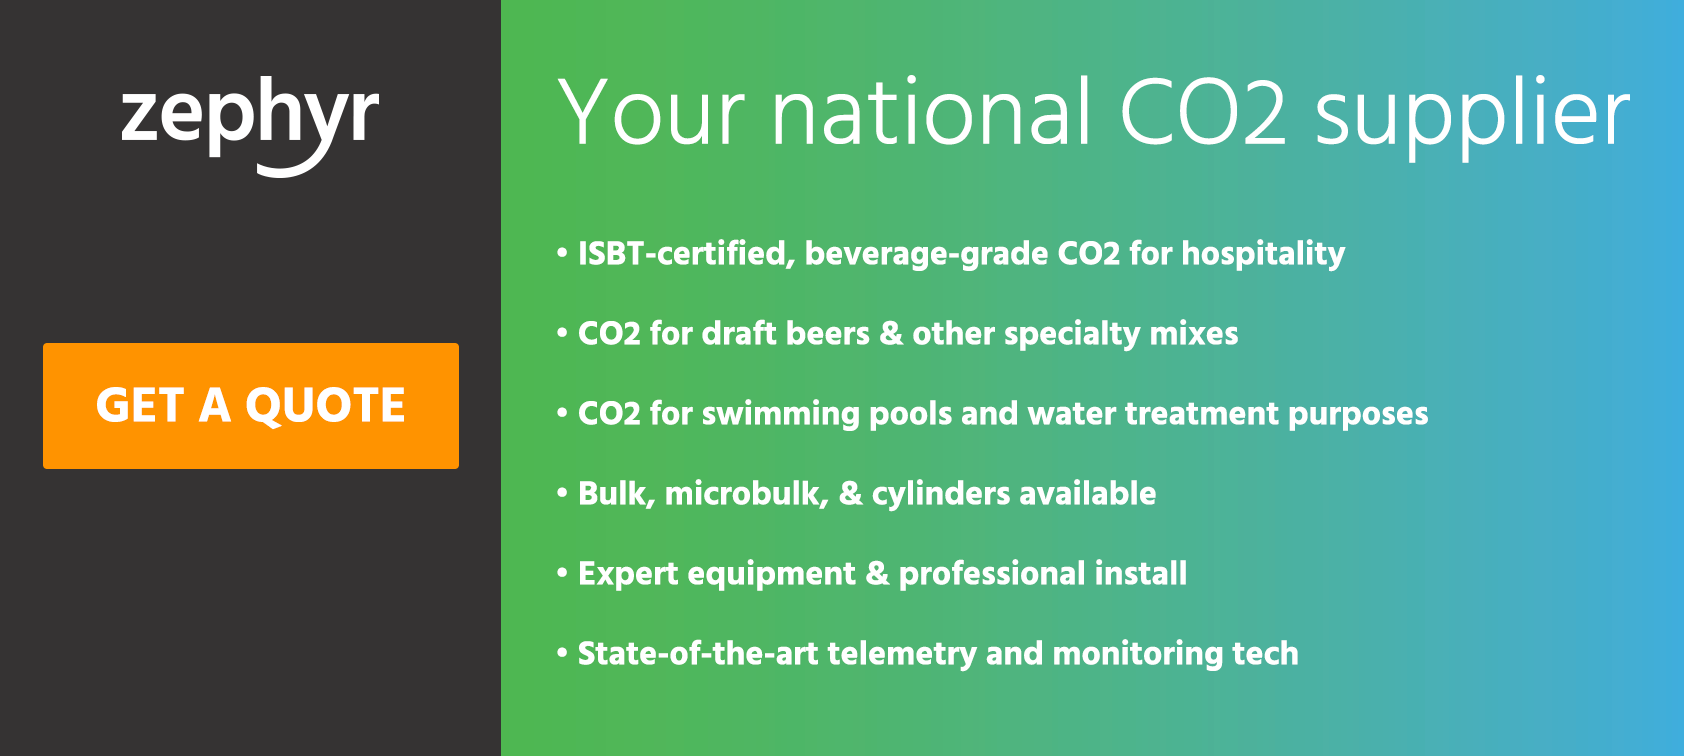 Get a free CO2 quote from Zephyr